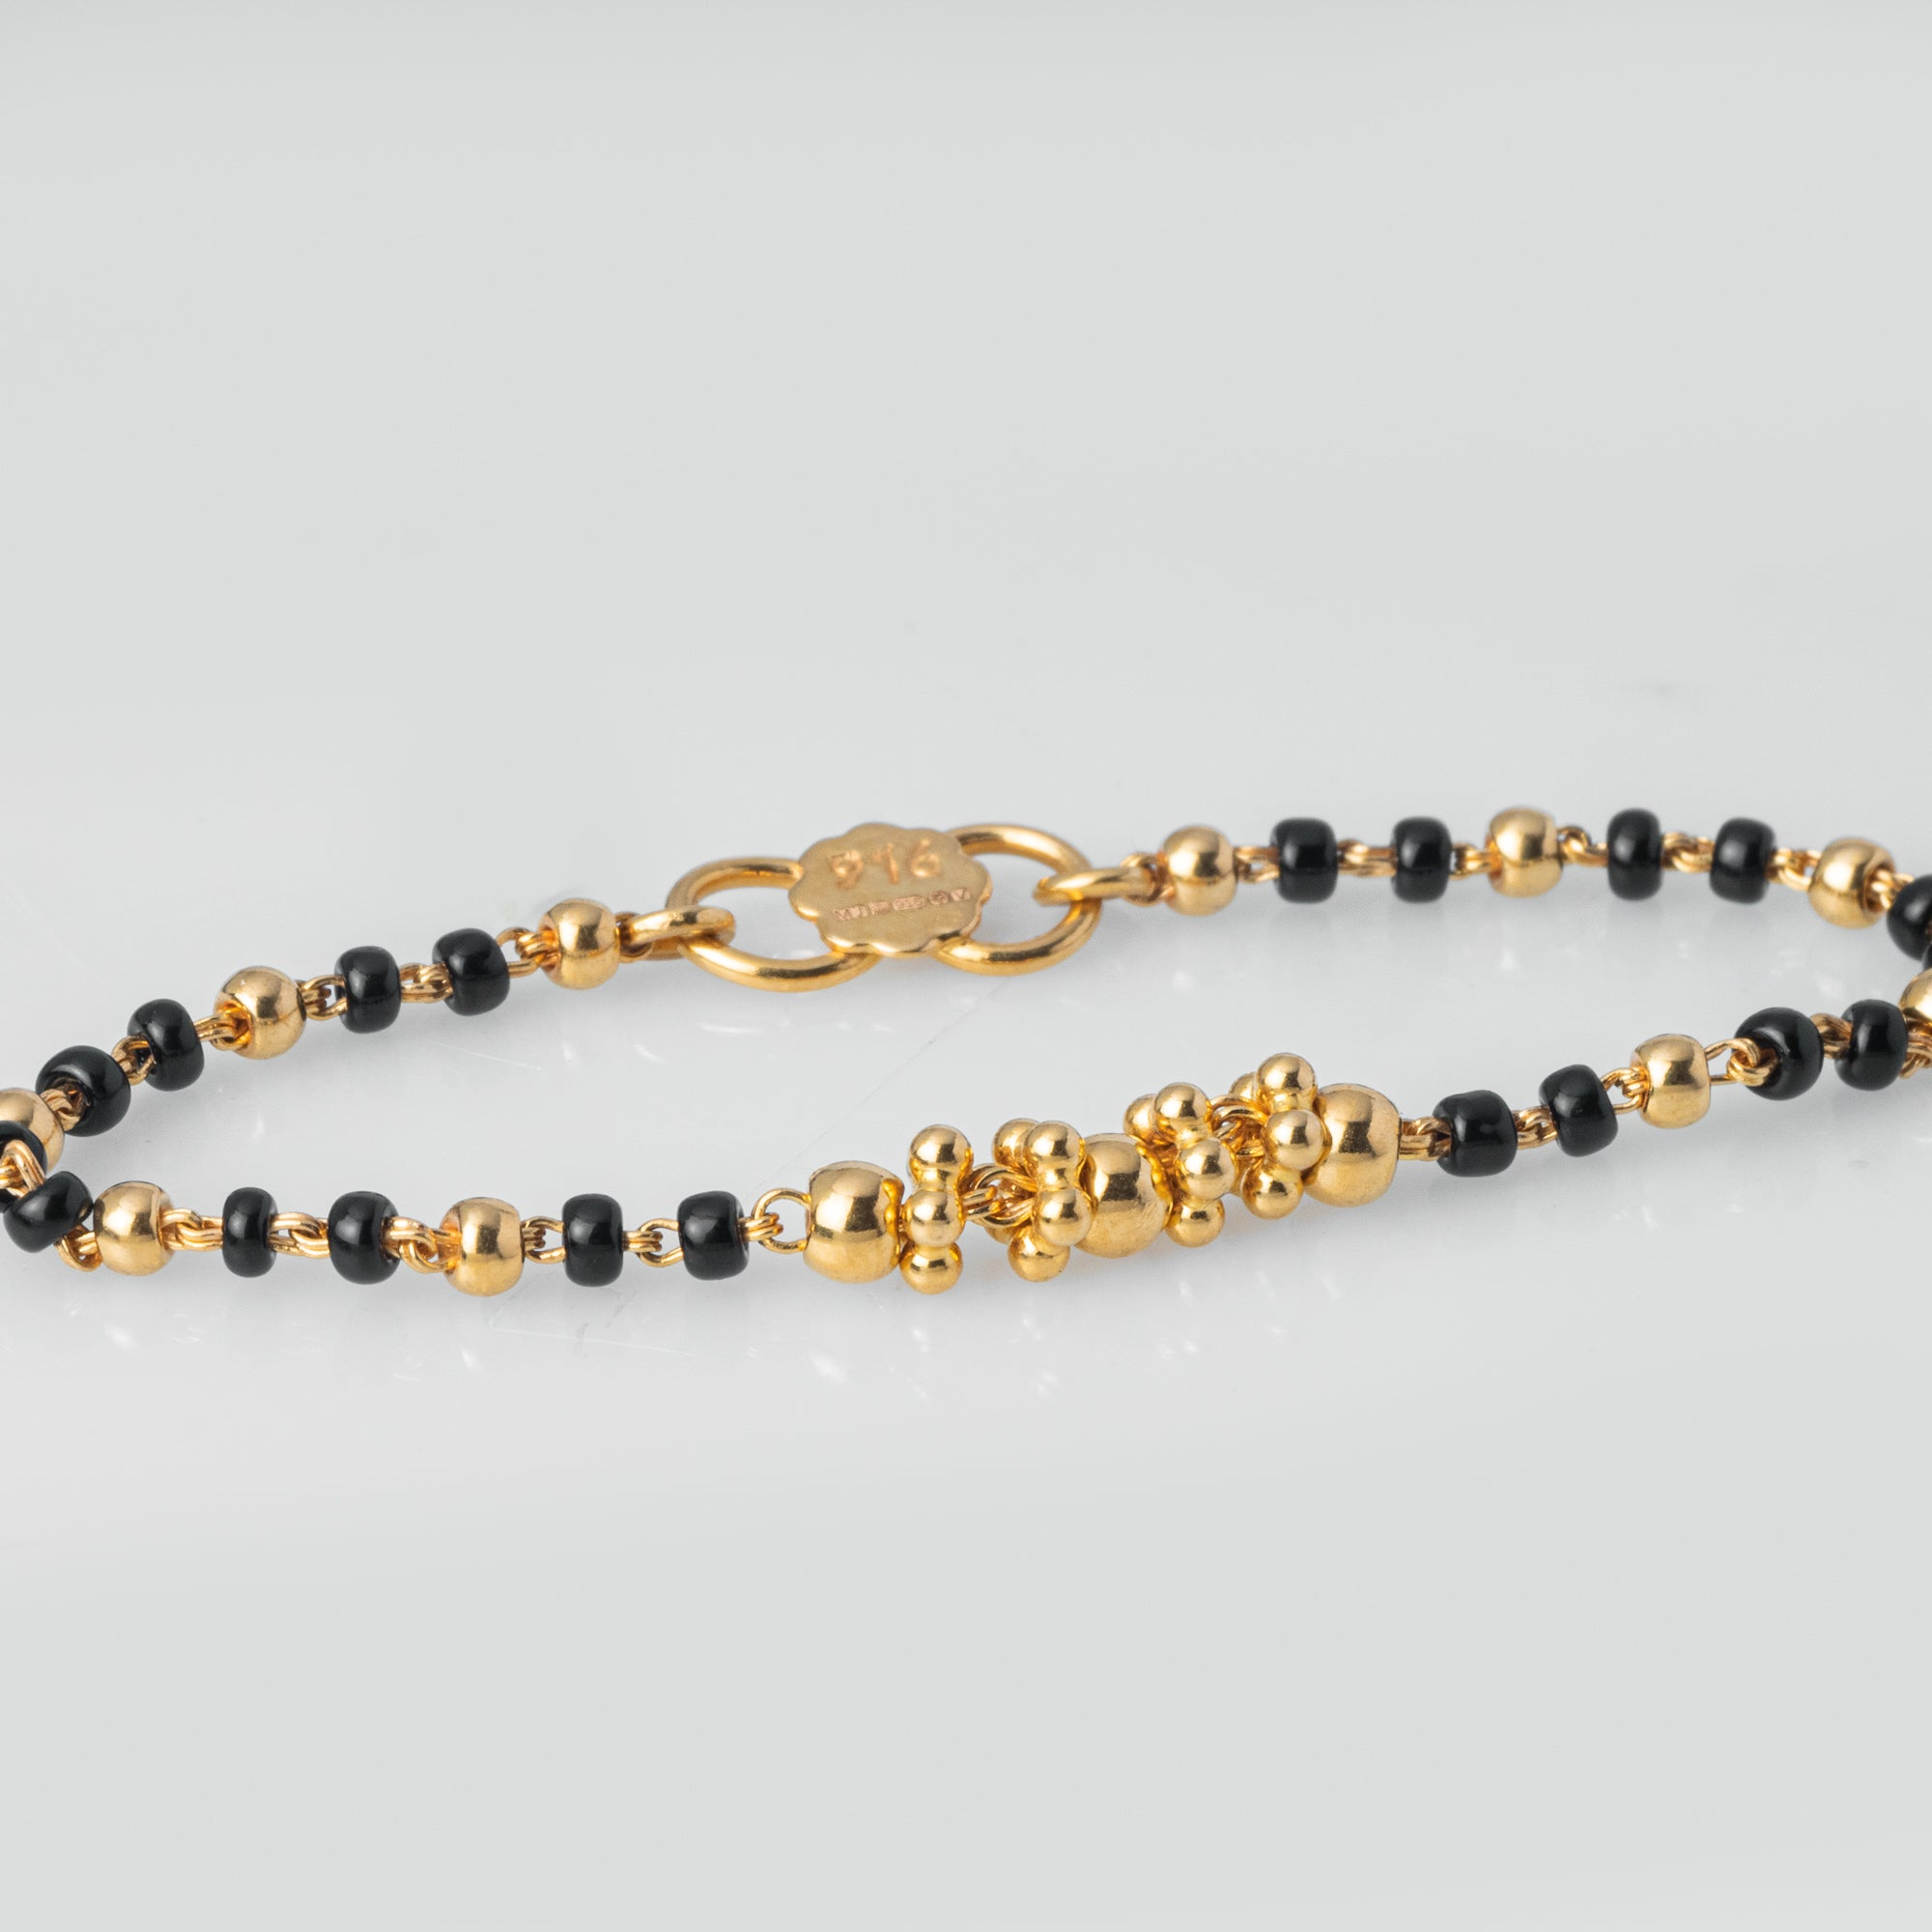 22ct Gold Children's Bracelets with Black Beads CBR-7972